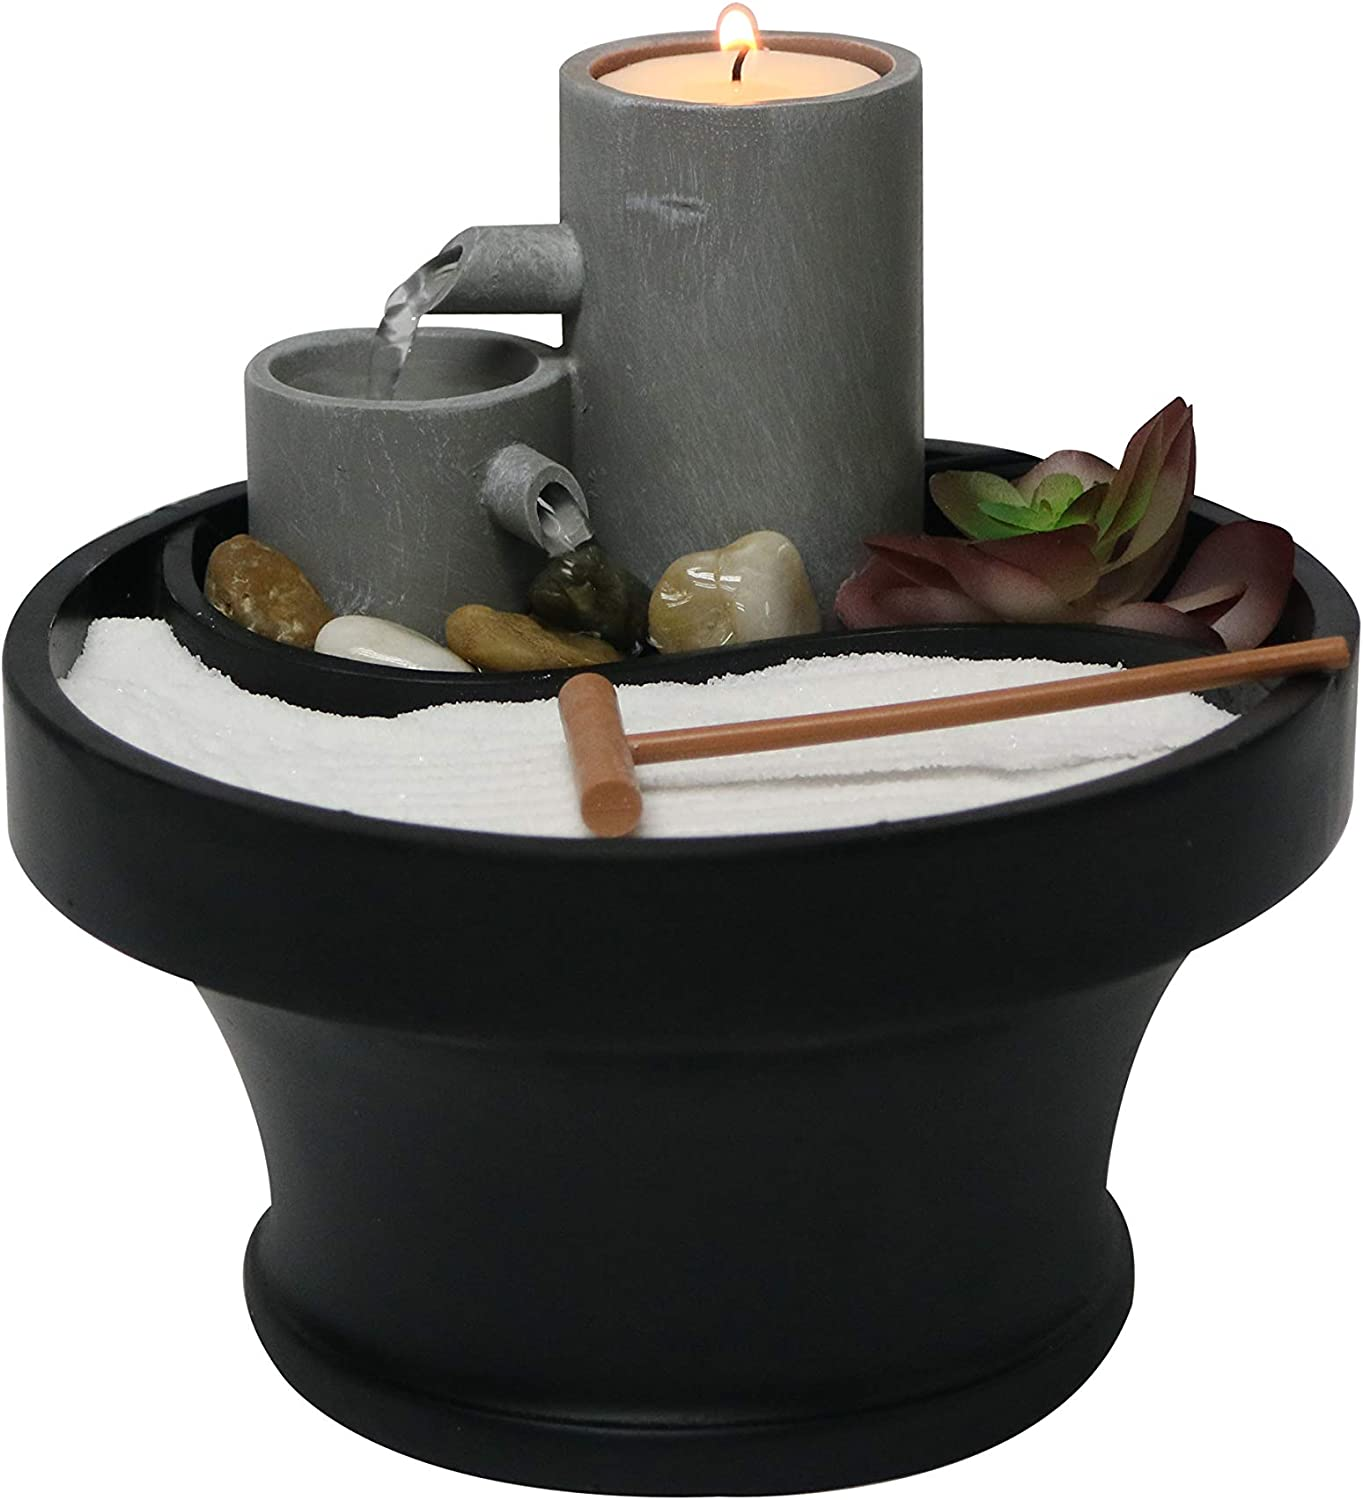 """Nature's Mark Relaxation Indoor Tabletop Water Fountain Zen Garden Combo Décor with Tealight Candle Holder and Accessories (6""""H x 7""""D) (Candle Not Included)"""